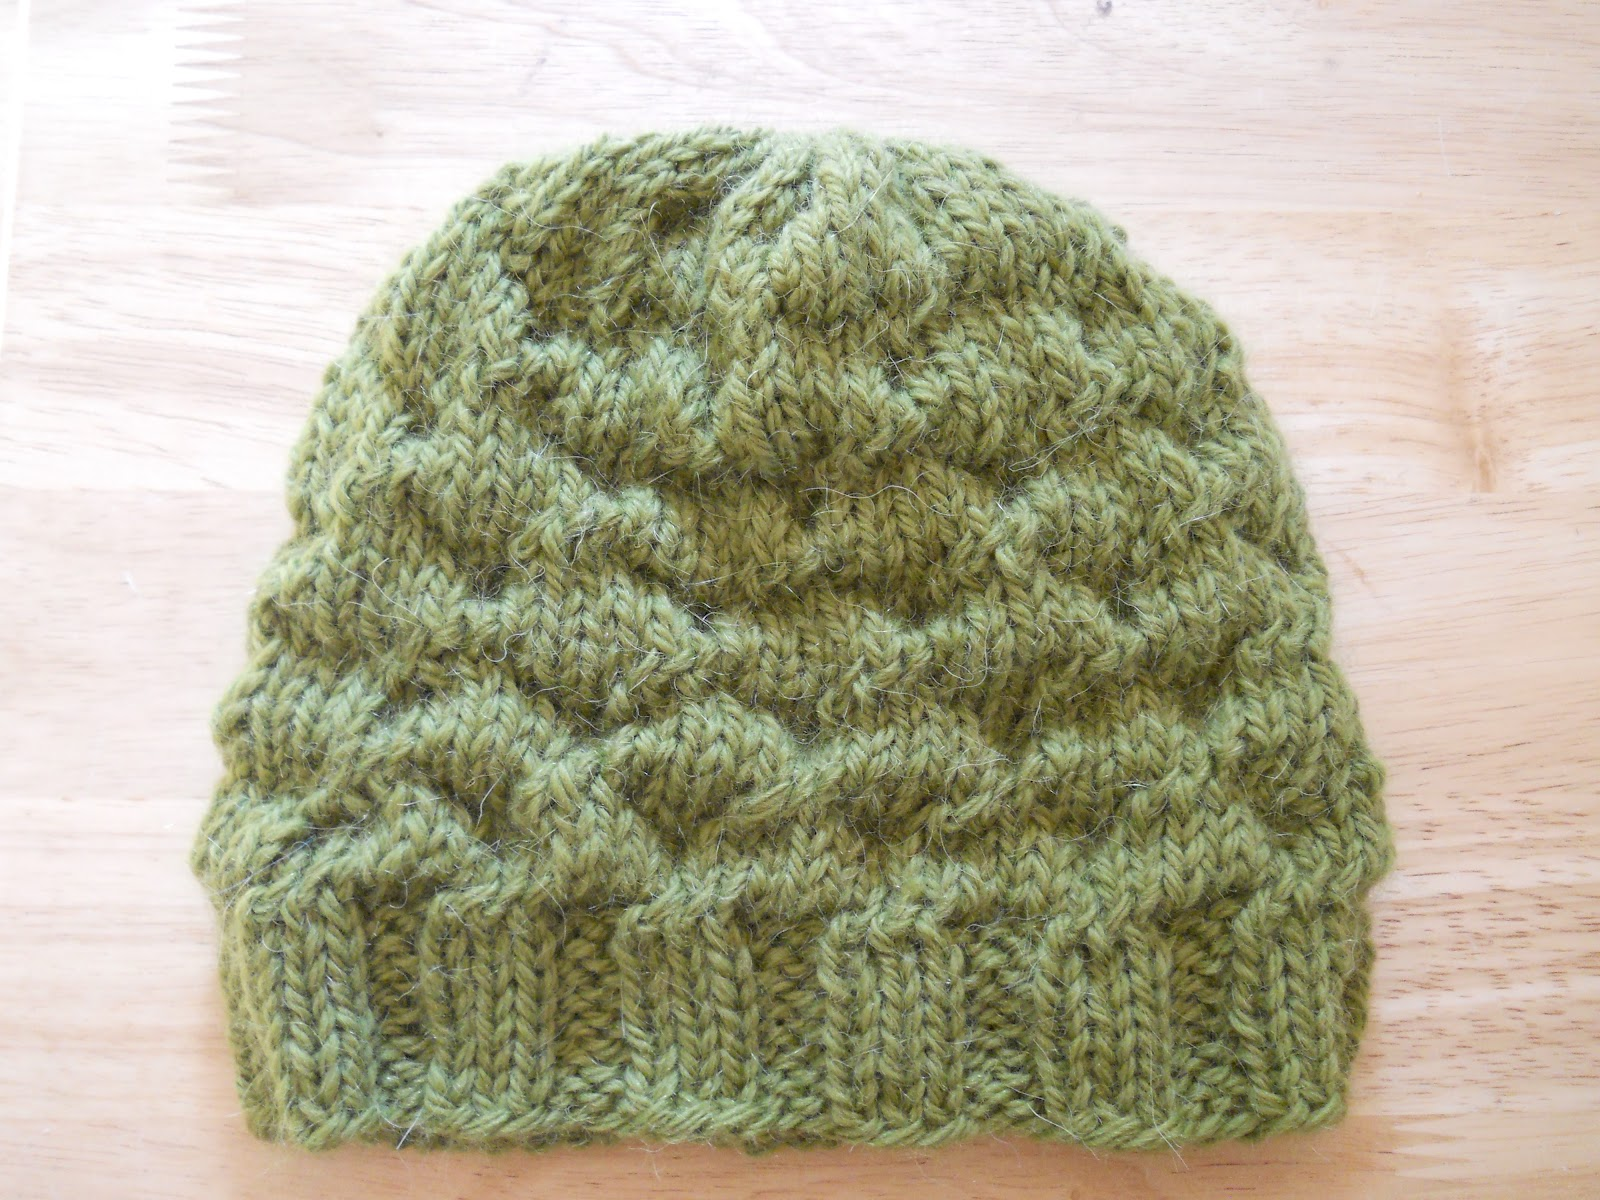 Knitting Pattern For Beanie : Knitting with Schnapps: Introducing the Love Bumps Beanie!